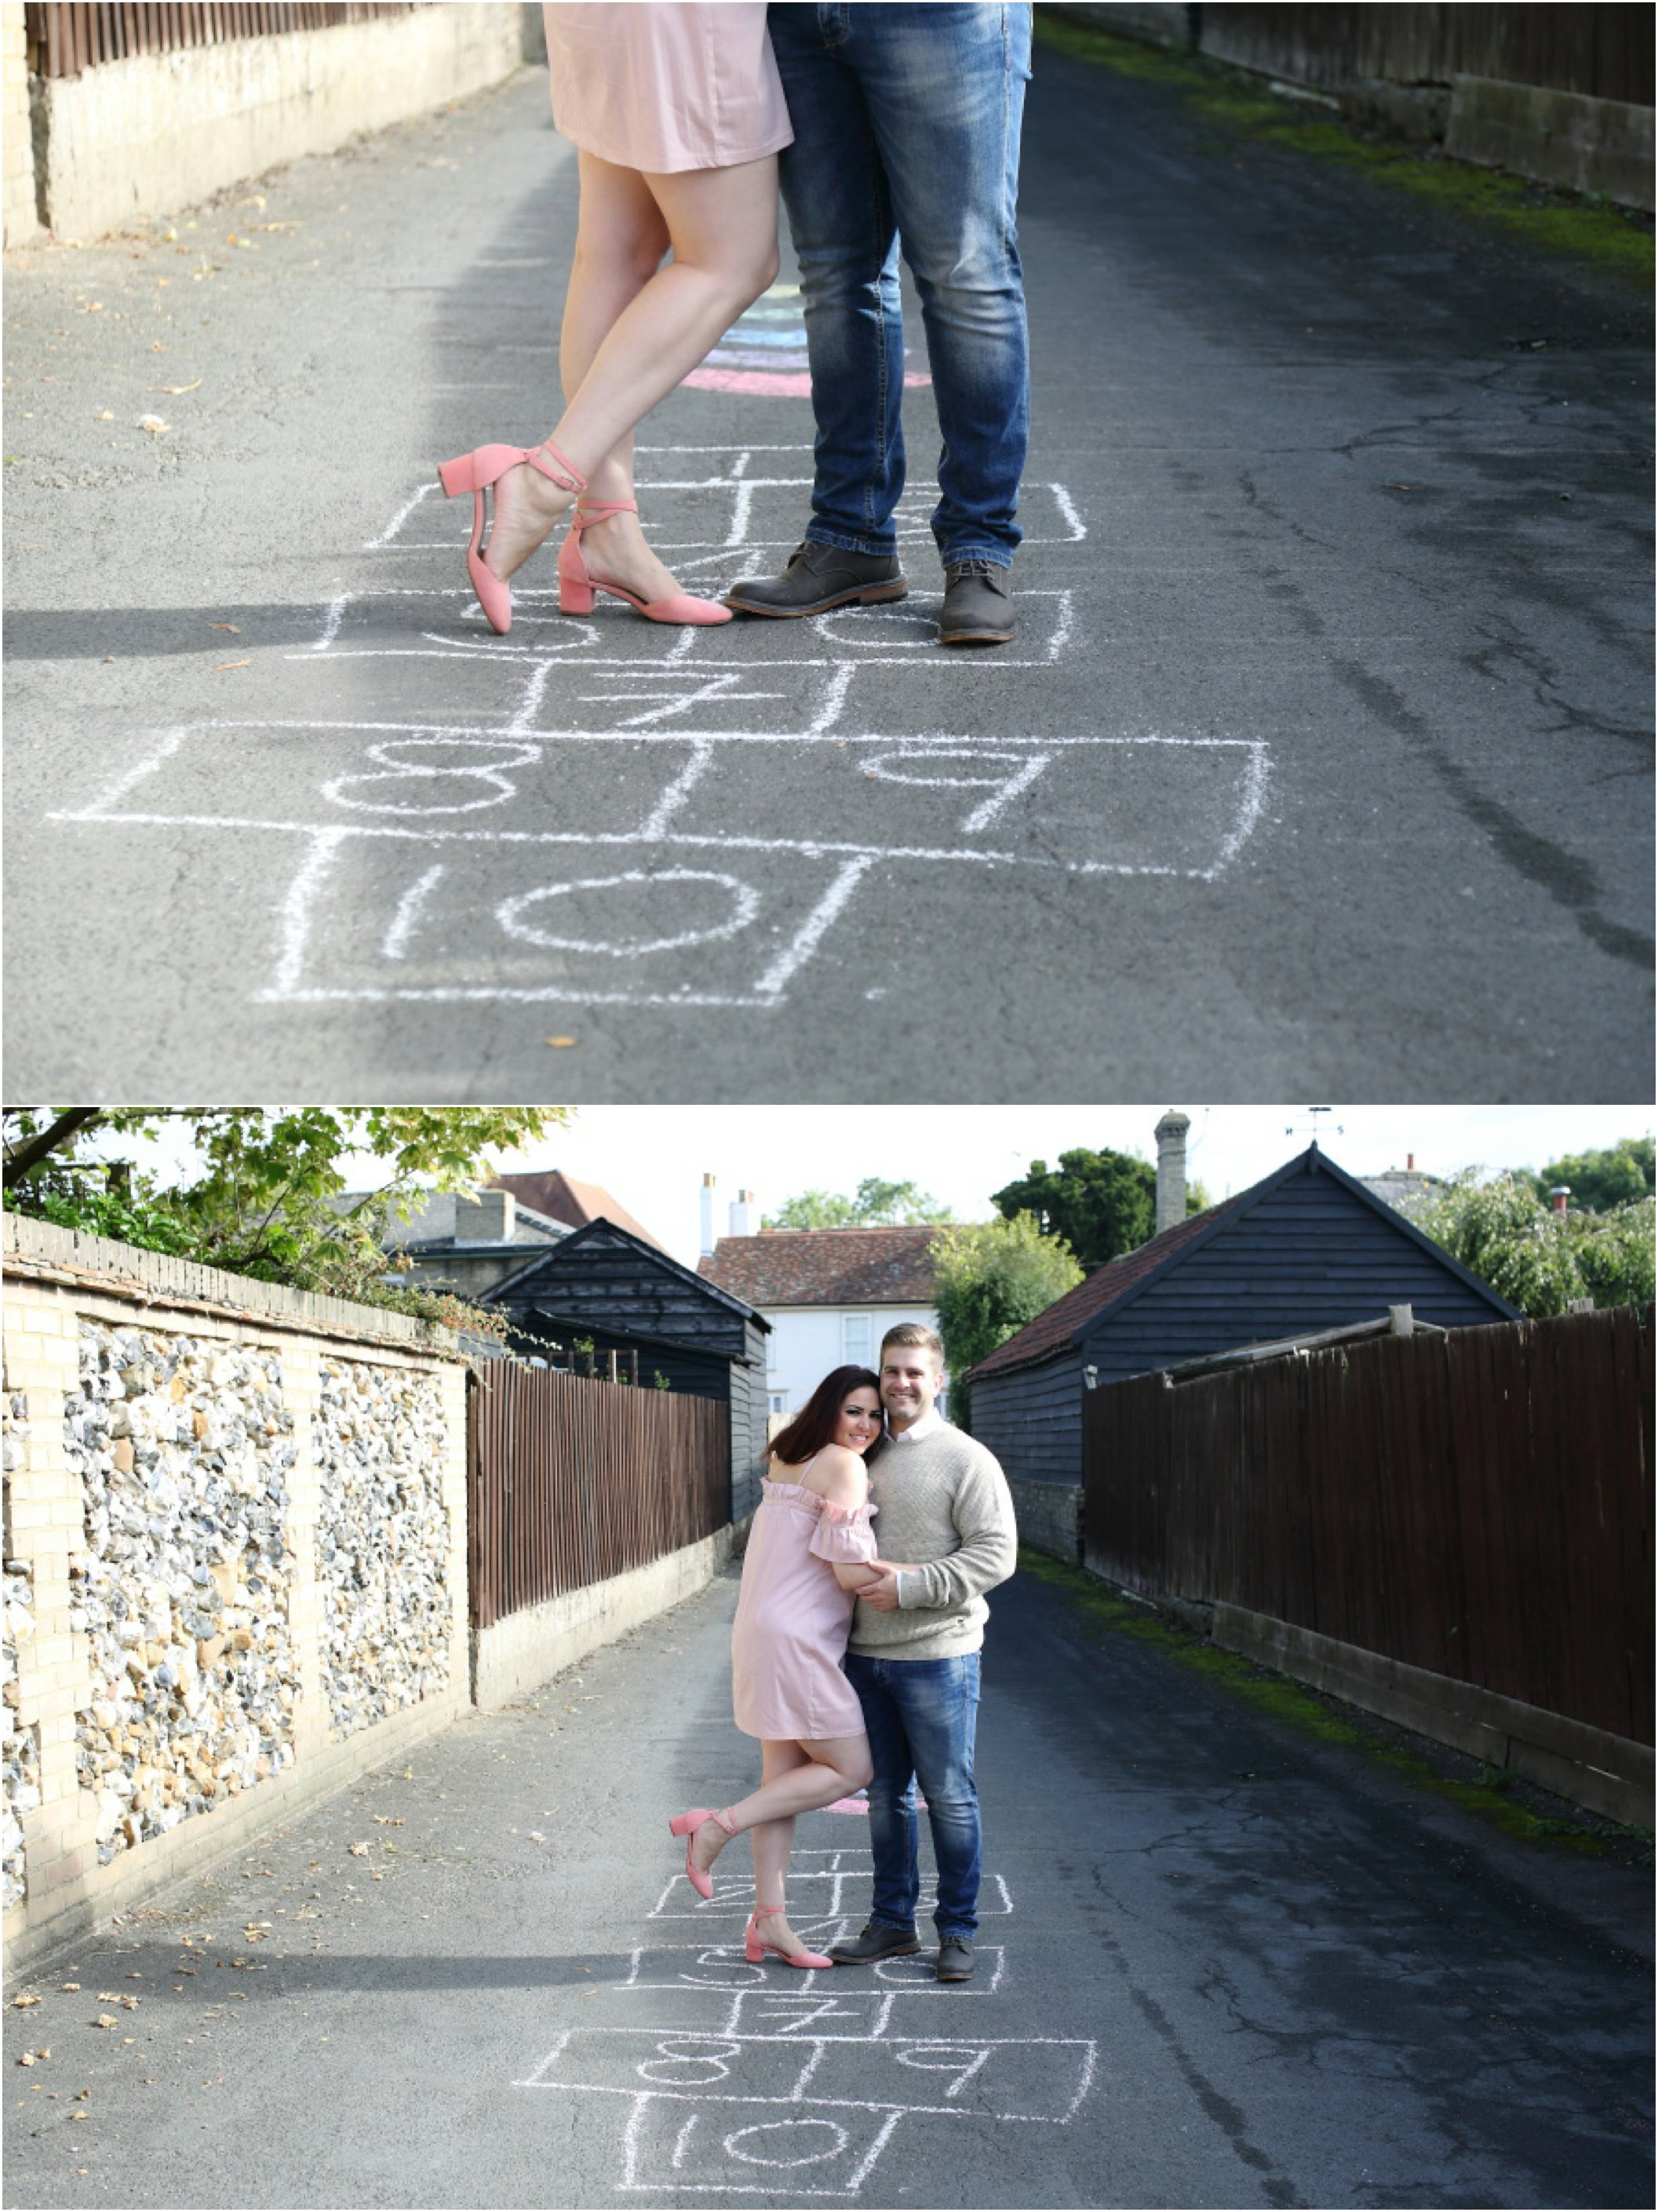 hop scotch chalked on the road at fun couples photo shoot in Cambridge